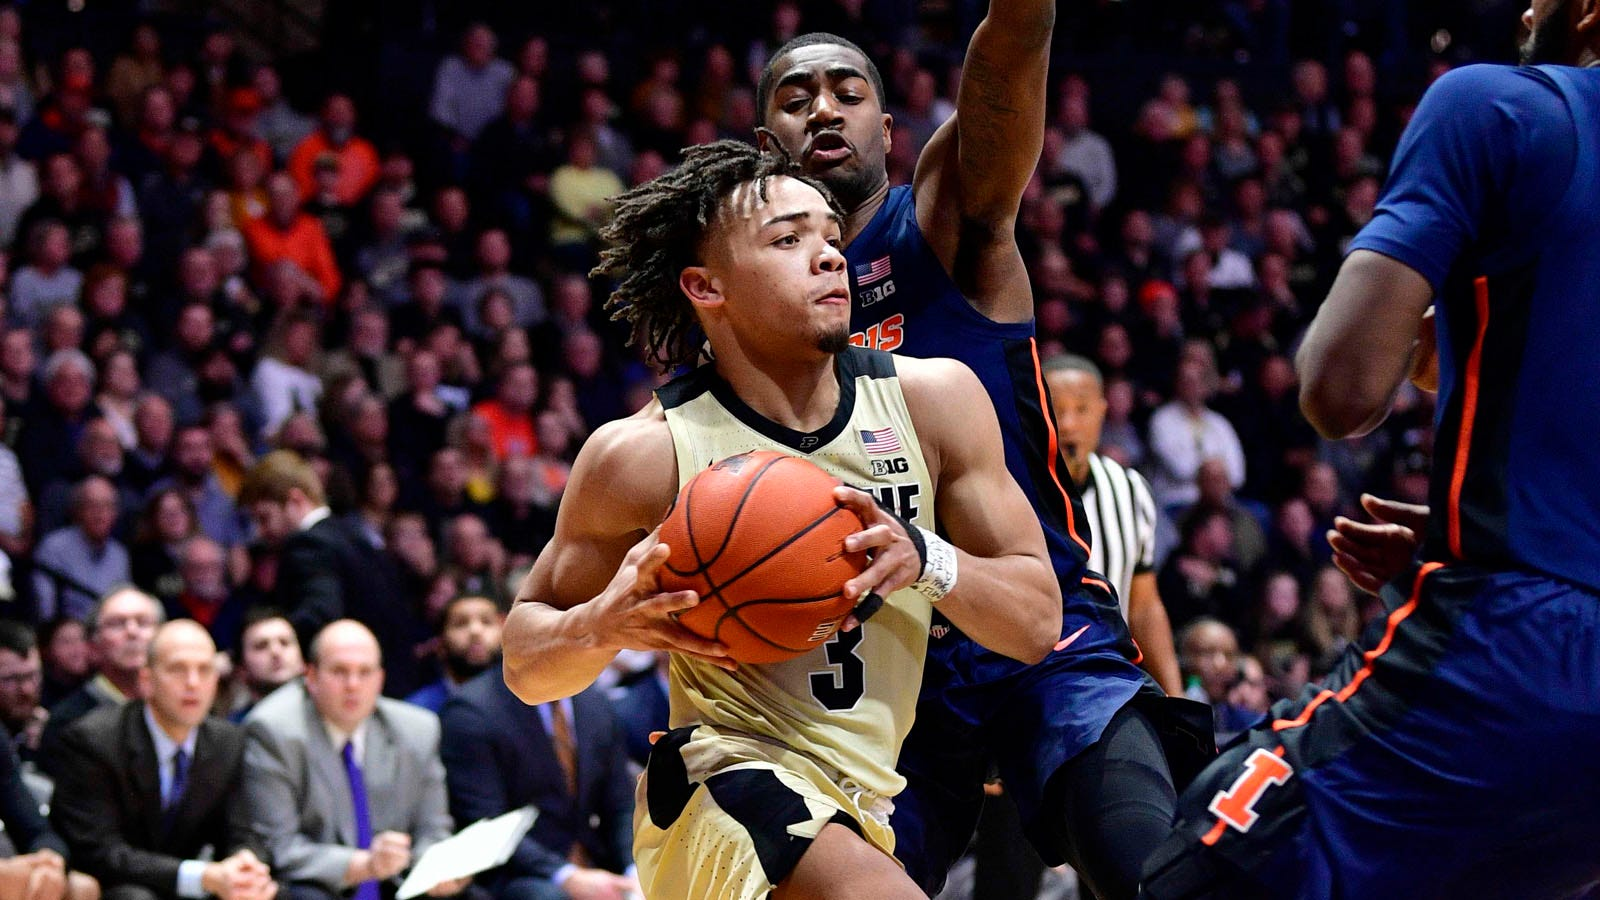 Edwards Scores 23 As Purdue Wins Fourth Straight 73 56 Over